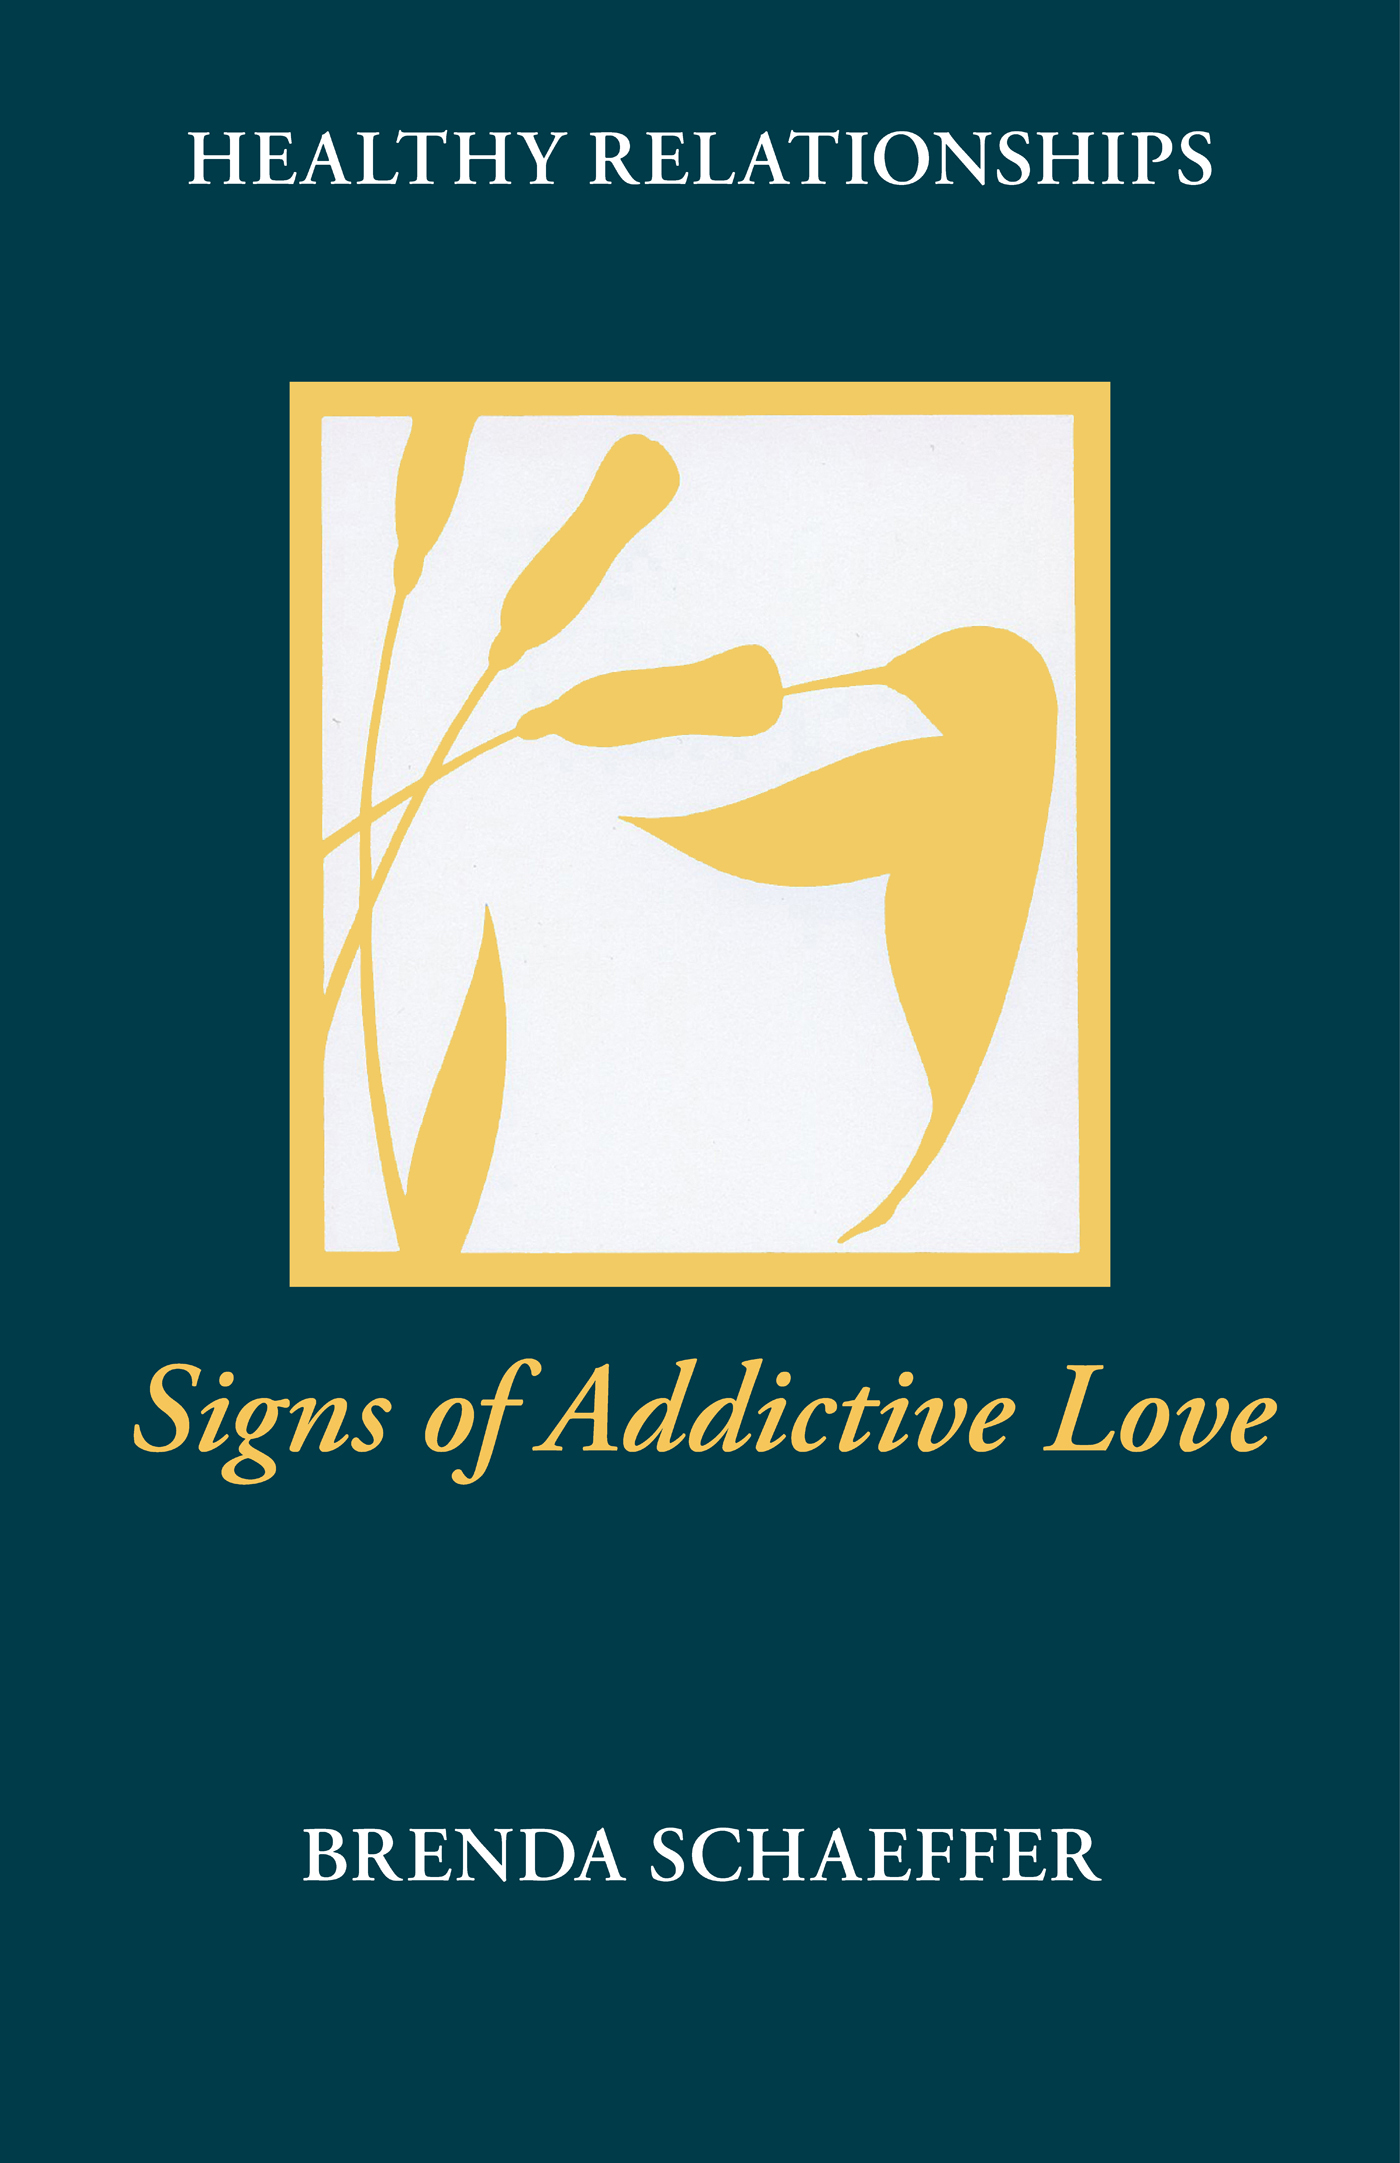 Signs of Addictive Love cover.jpg